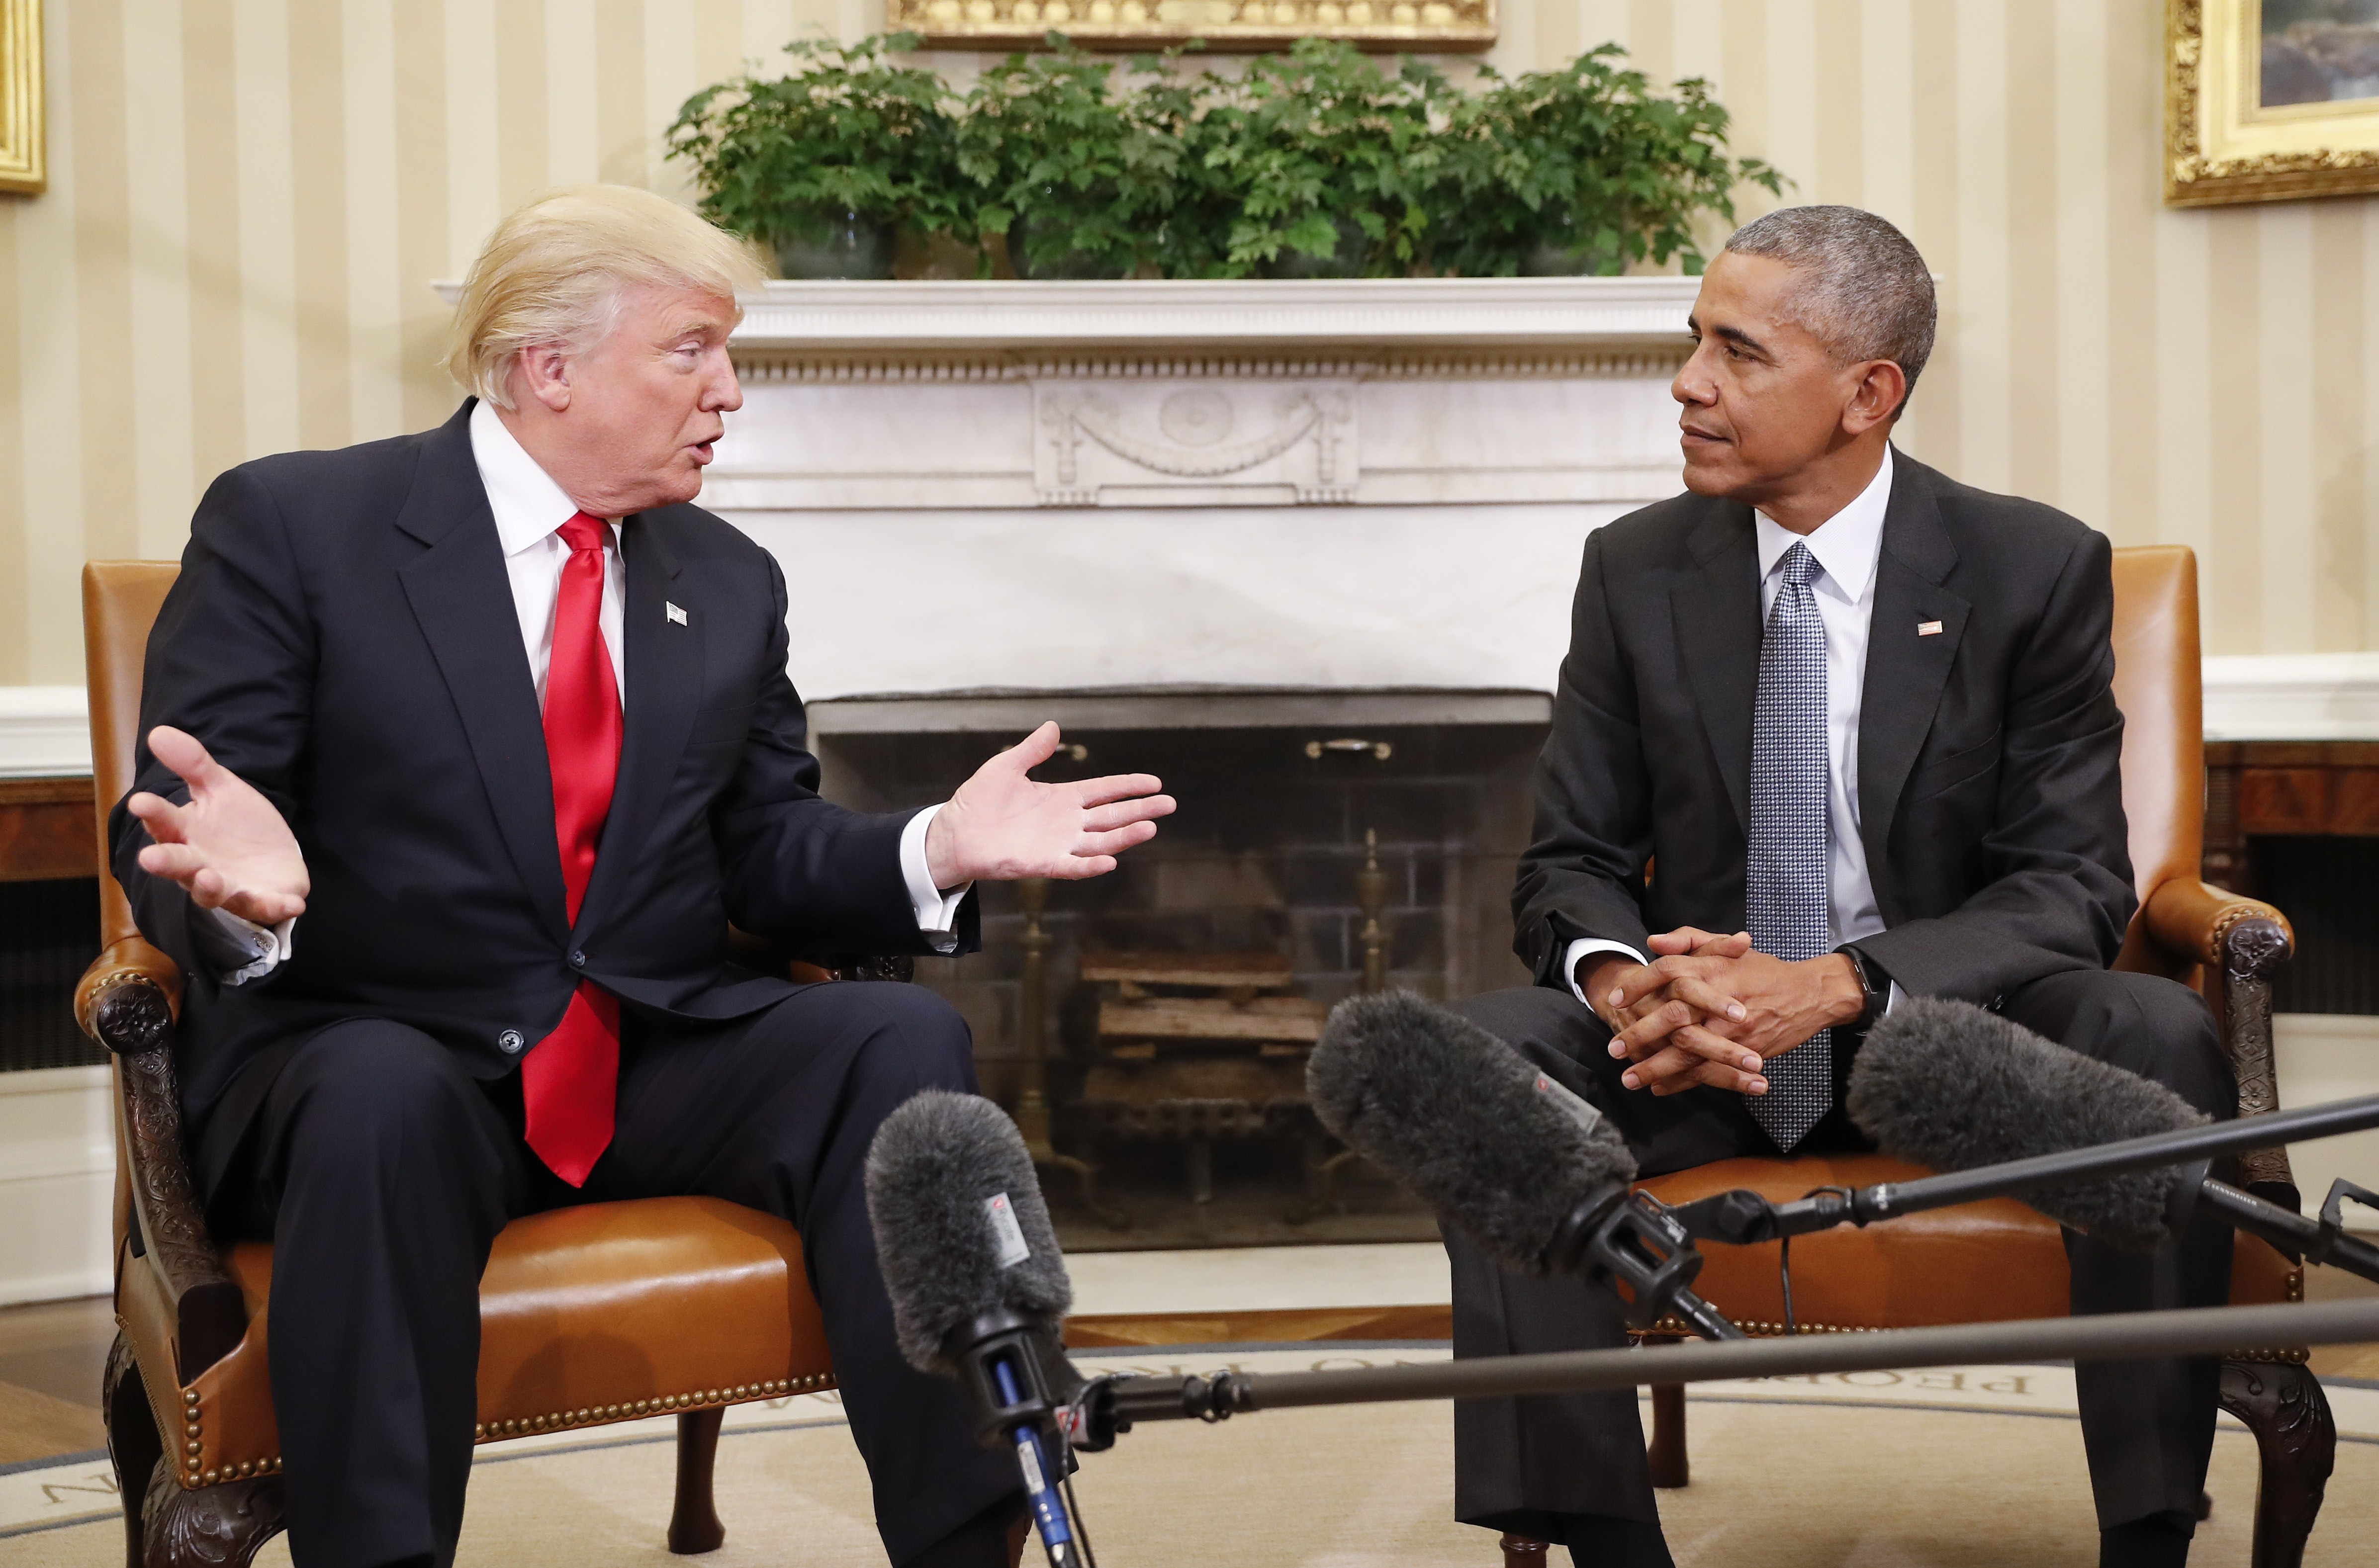 barak obama oval office golds. Click To Enlarge President Barack Obama Meeting With President-elect Donald Trump In The Oval Office November Barak Golds A